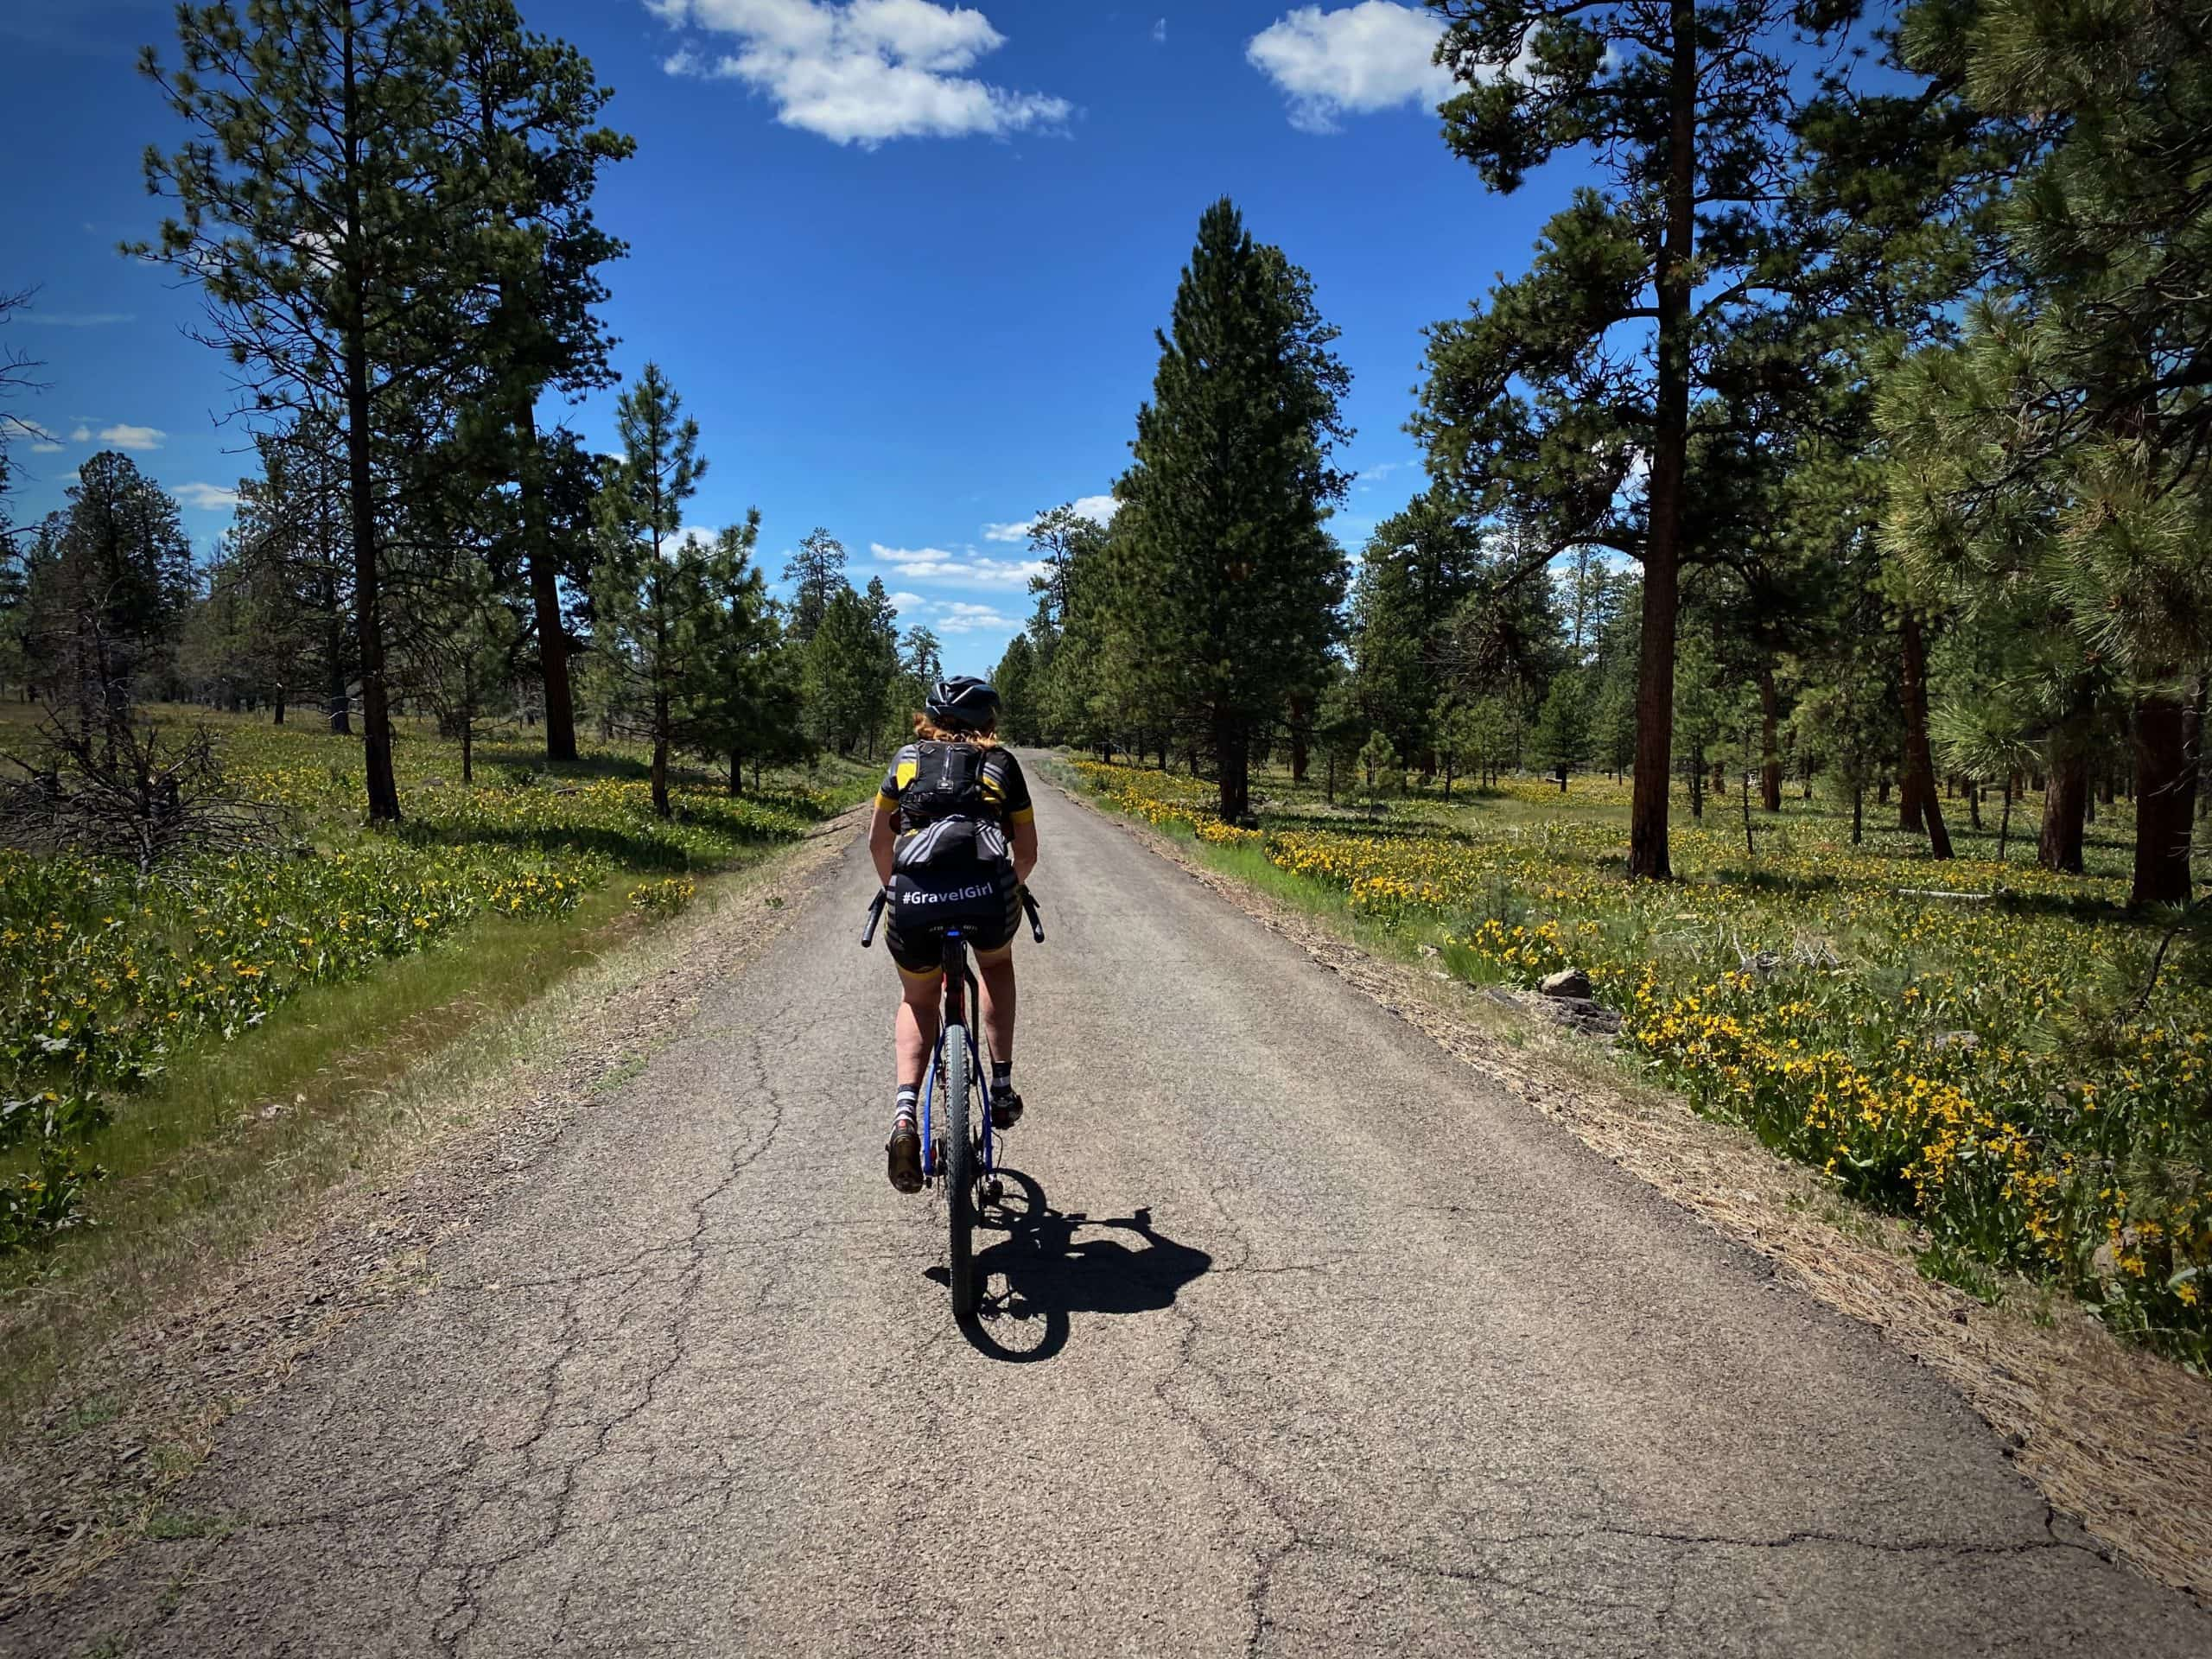 Cyclist on NF-58, single lane paved road in the Ochoco National forest.